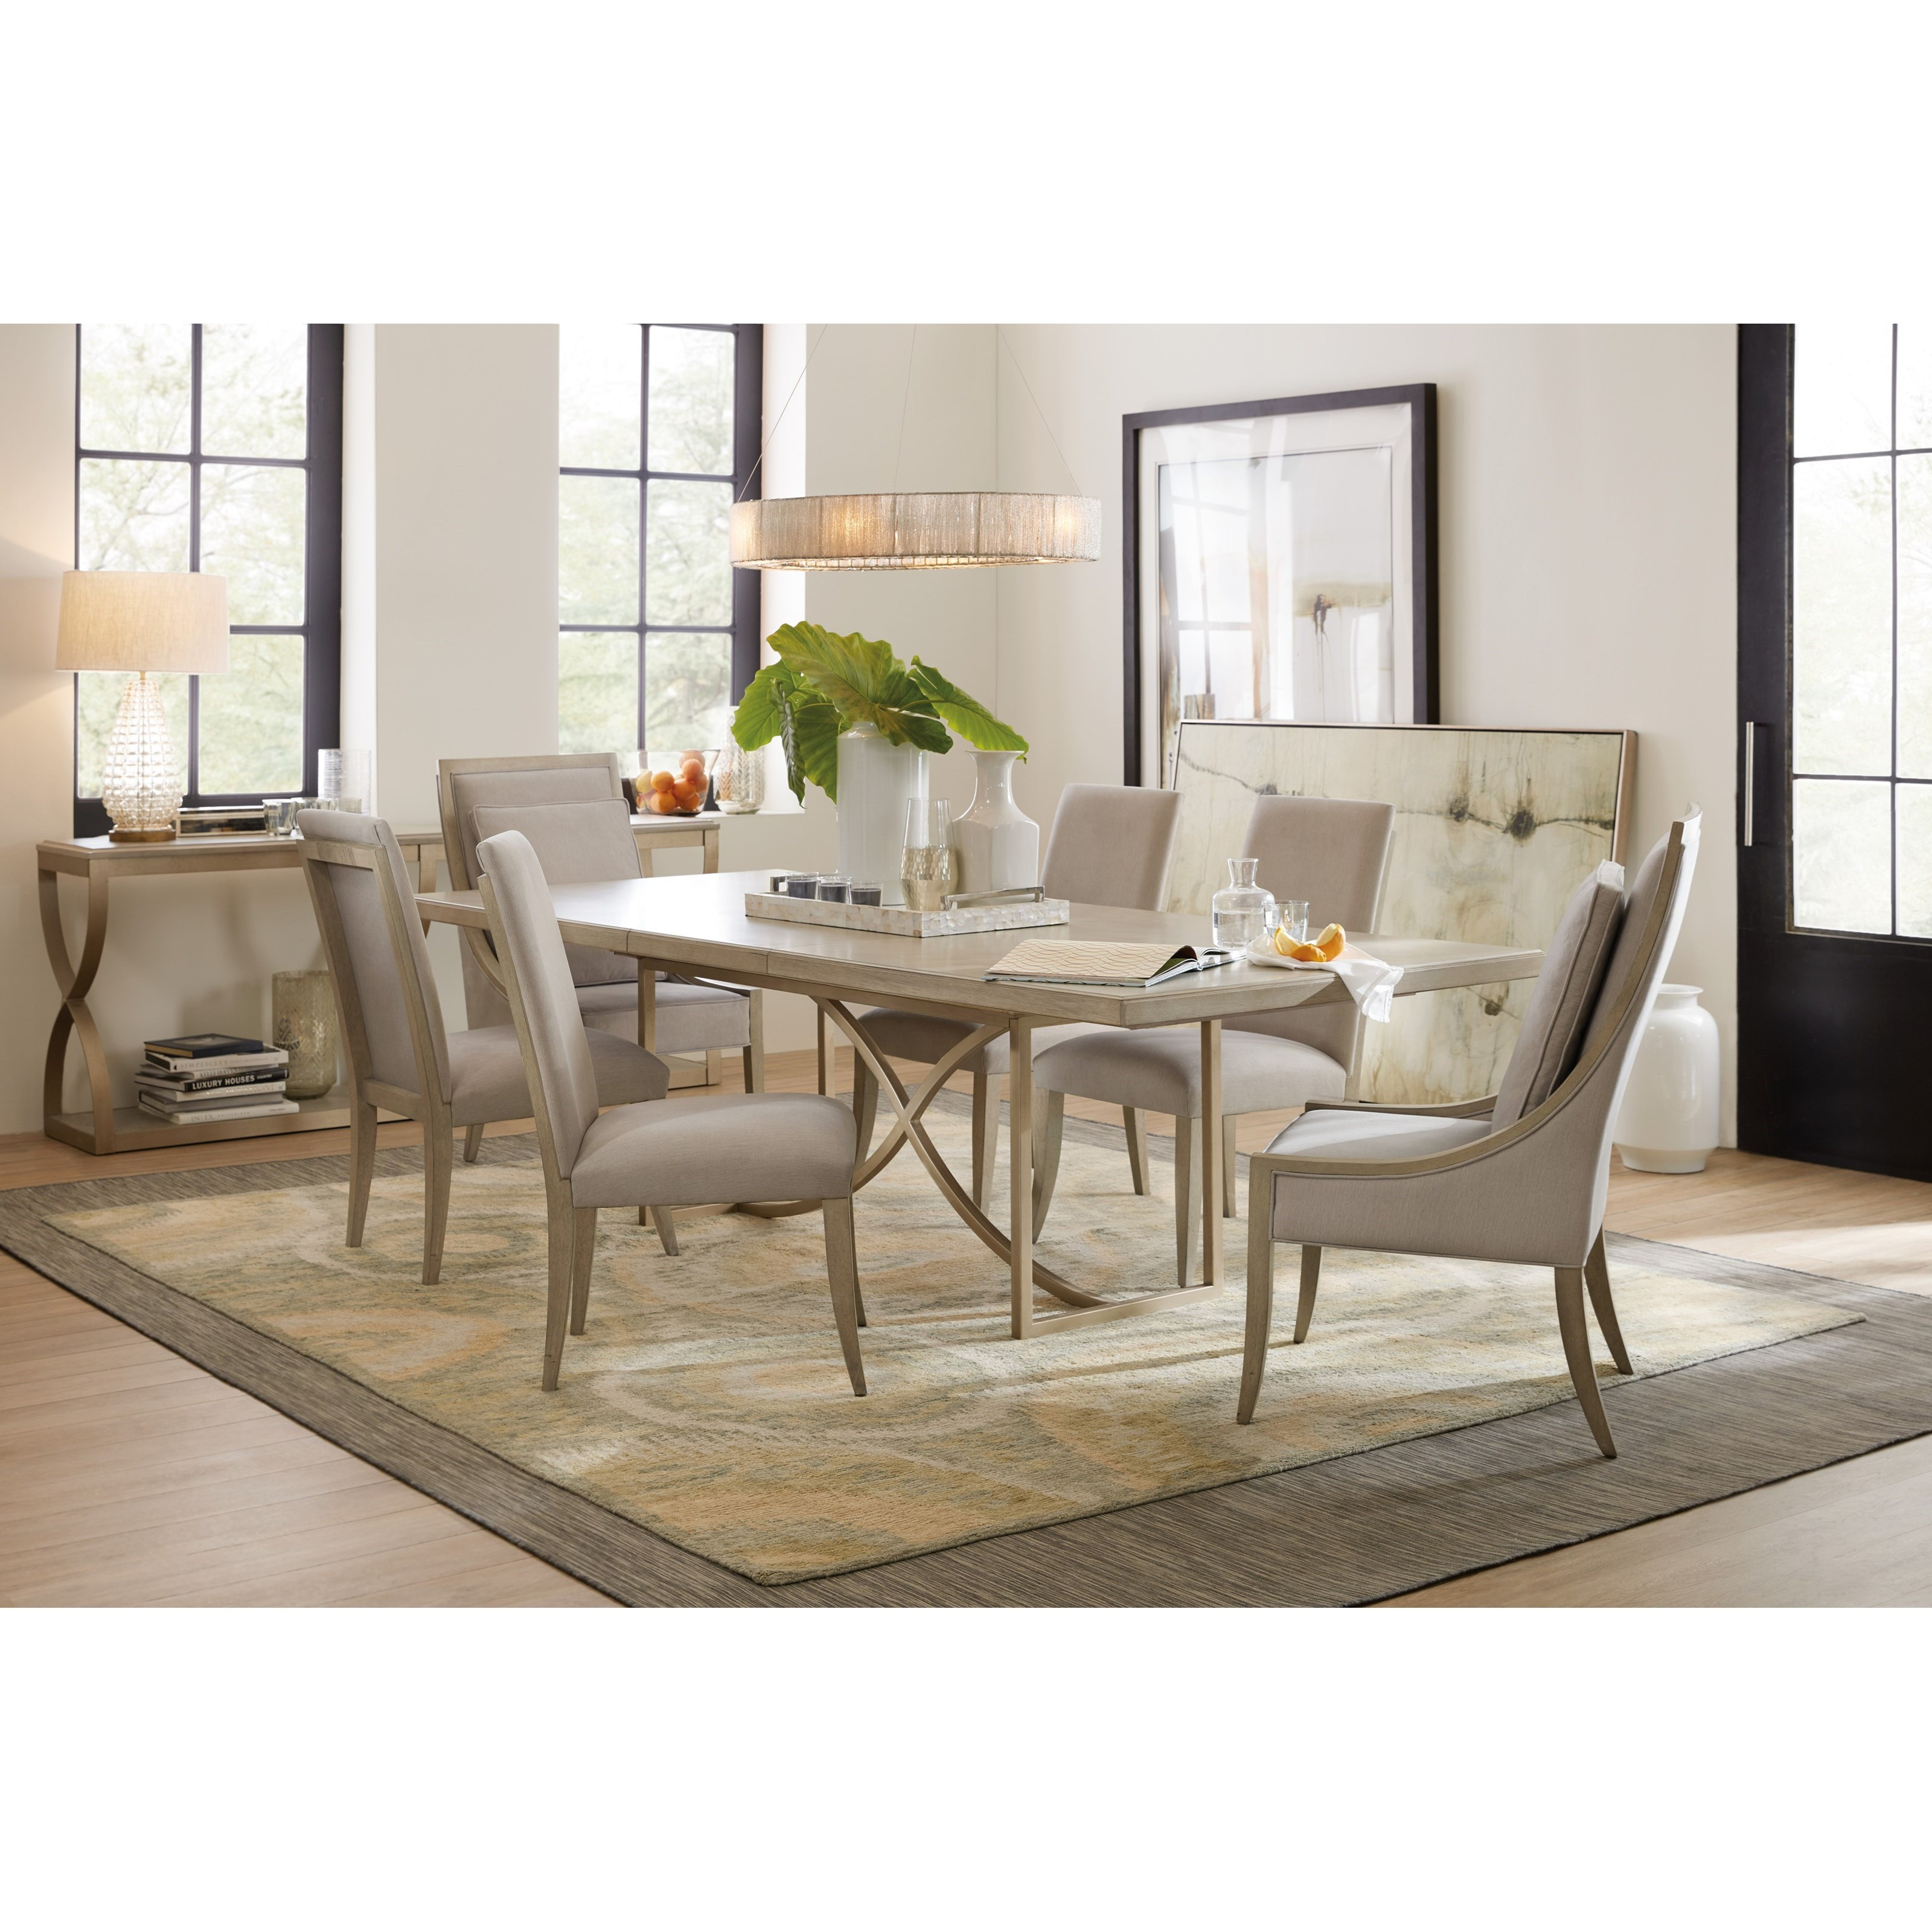 Rectangular Dining Room Tables With Leaves: Hooker Furniture Elixir 80in Rectangular Dining Table With